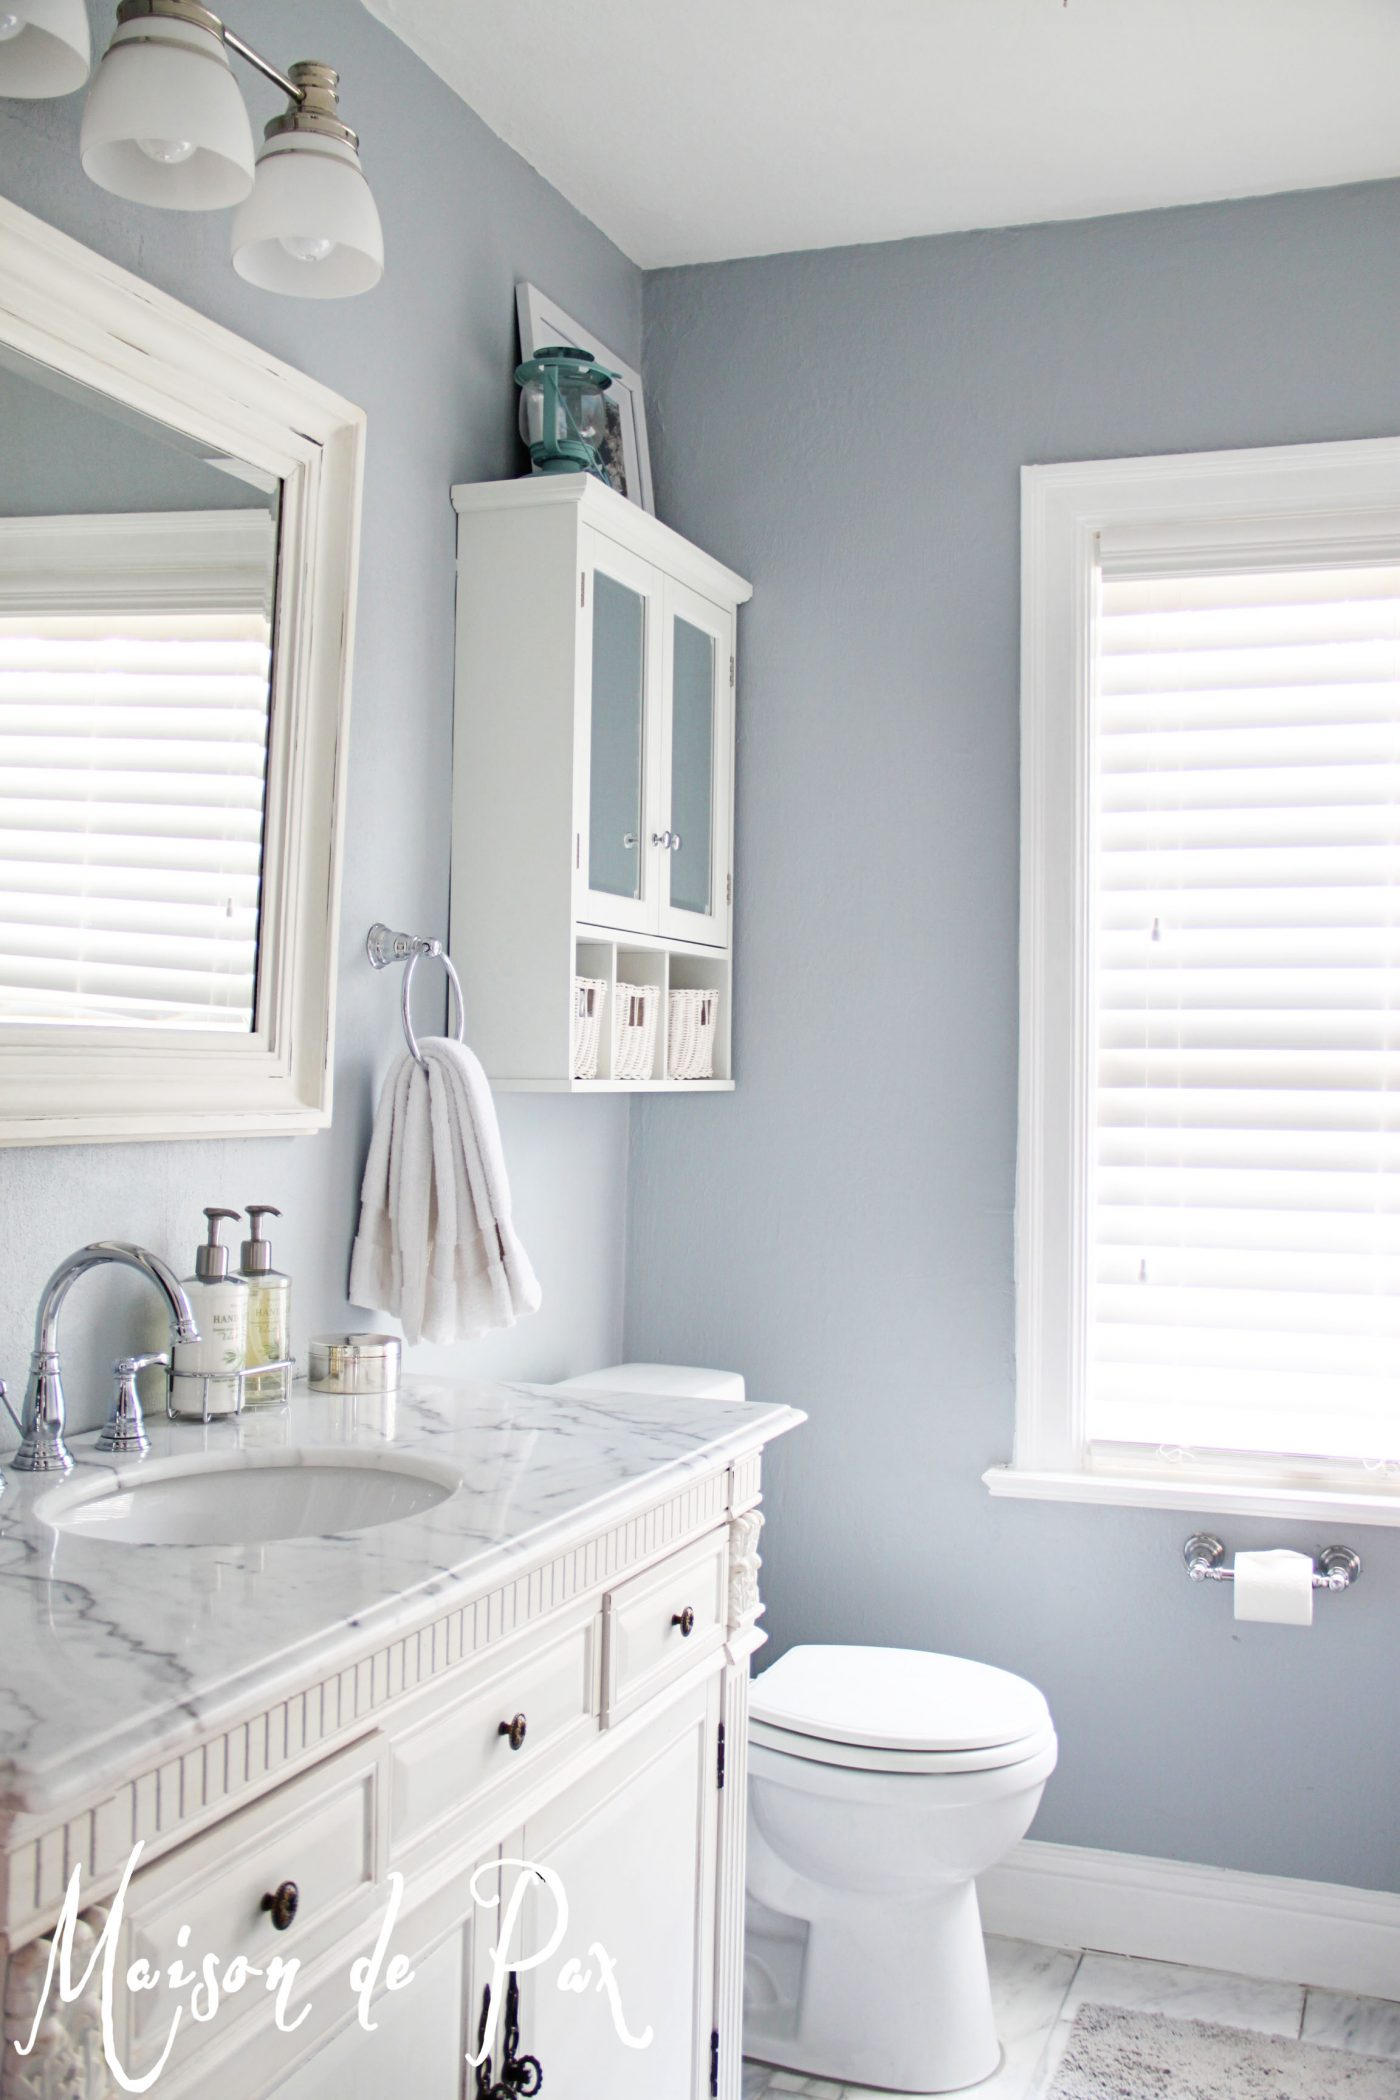 How to design a small bathroom - Bathroom design colors ...